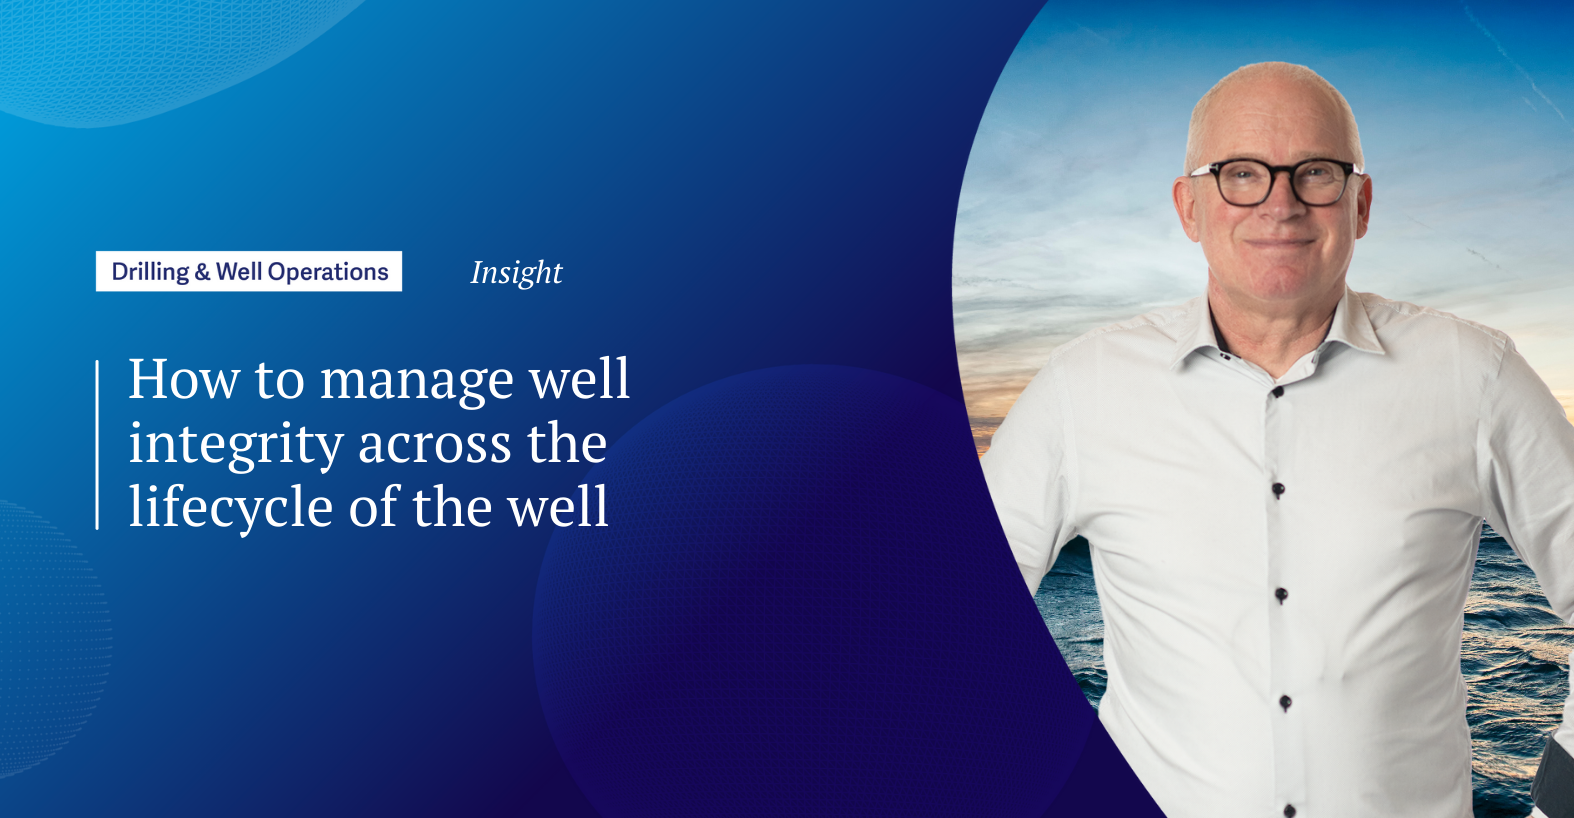 How to manage well integrity across the lifecycle of the well